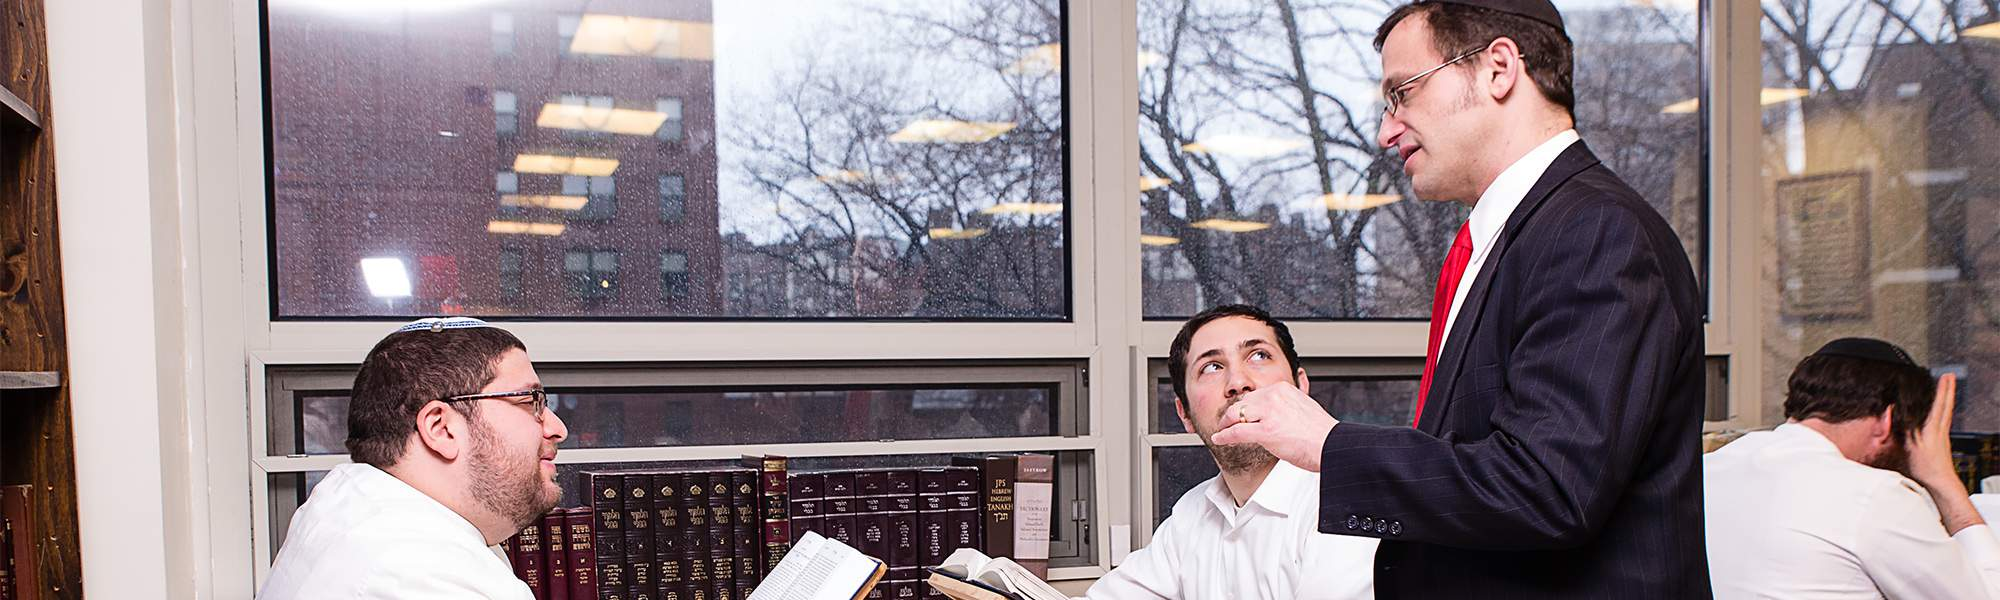 Rosh HaYeshiva's Welcome - Yeshivat Chovevei Torah, Setting the standard in rabbinic education